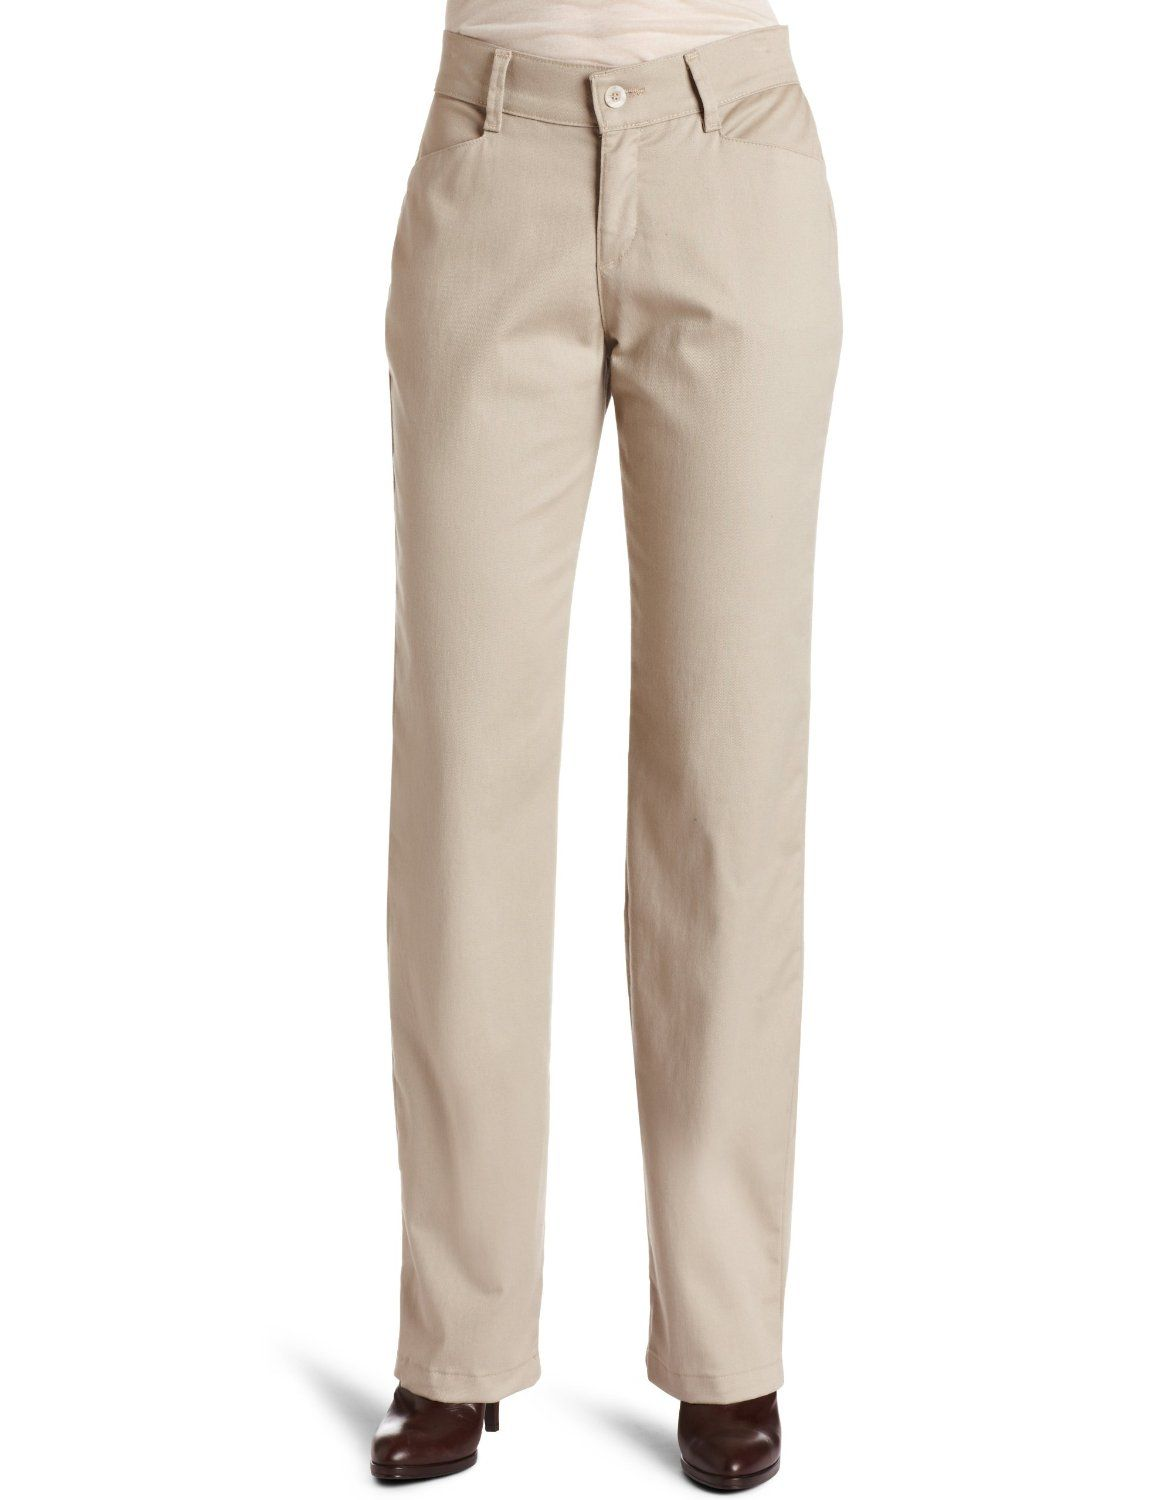 5f11ad4d391 Lee Women s Relaxed Fit Straight-Leg Pant ( 27.90)  http   www.amazon.com exec obidos ASIN B0051D7GF8 hpb2-20 ASIN B0051D7GF8  These are NOT true to size.